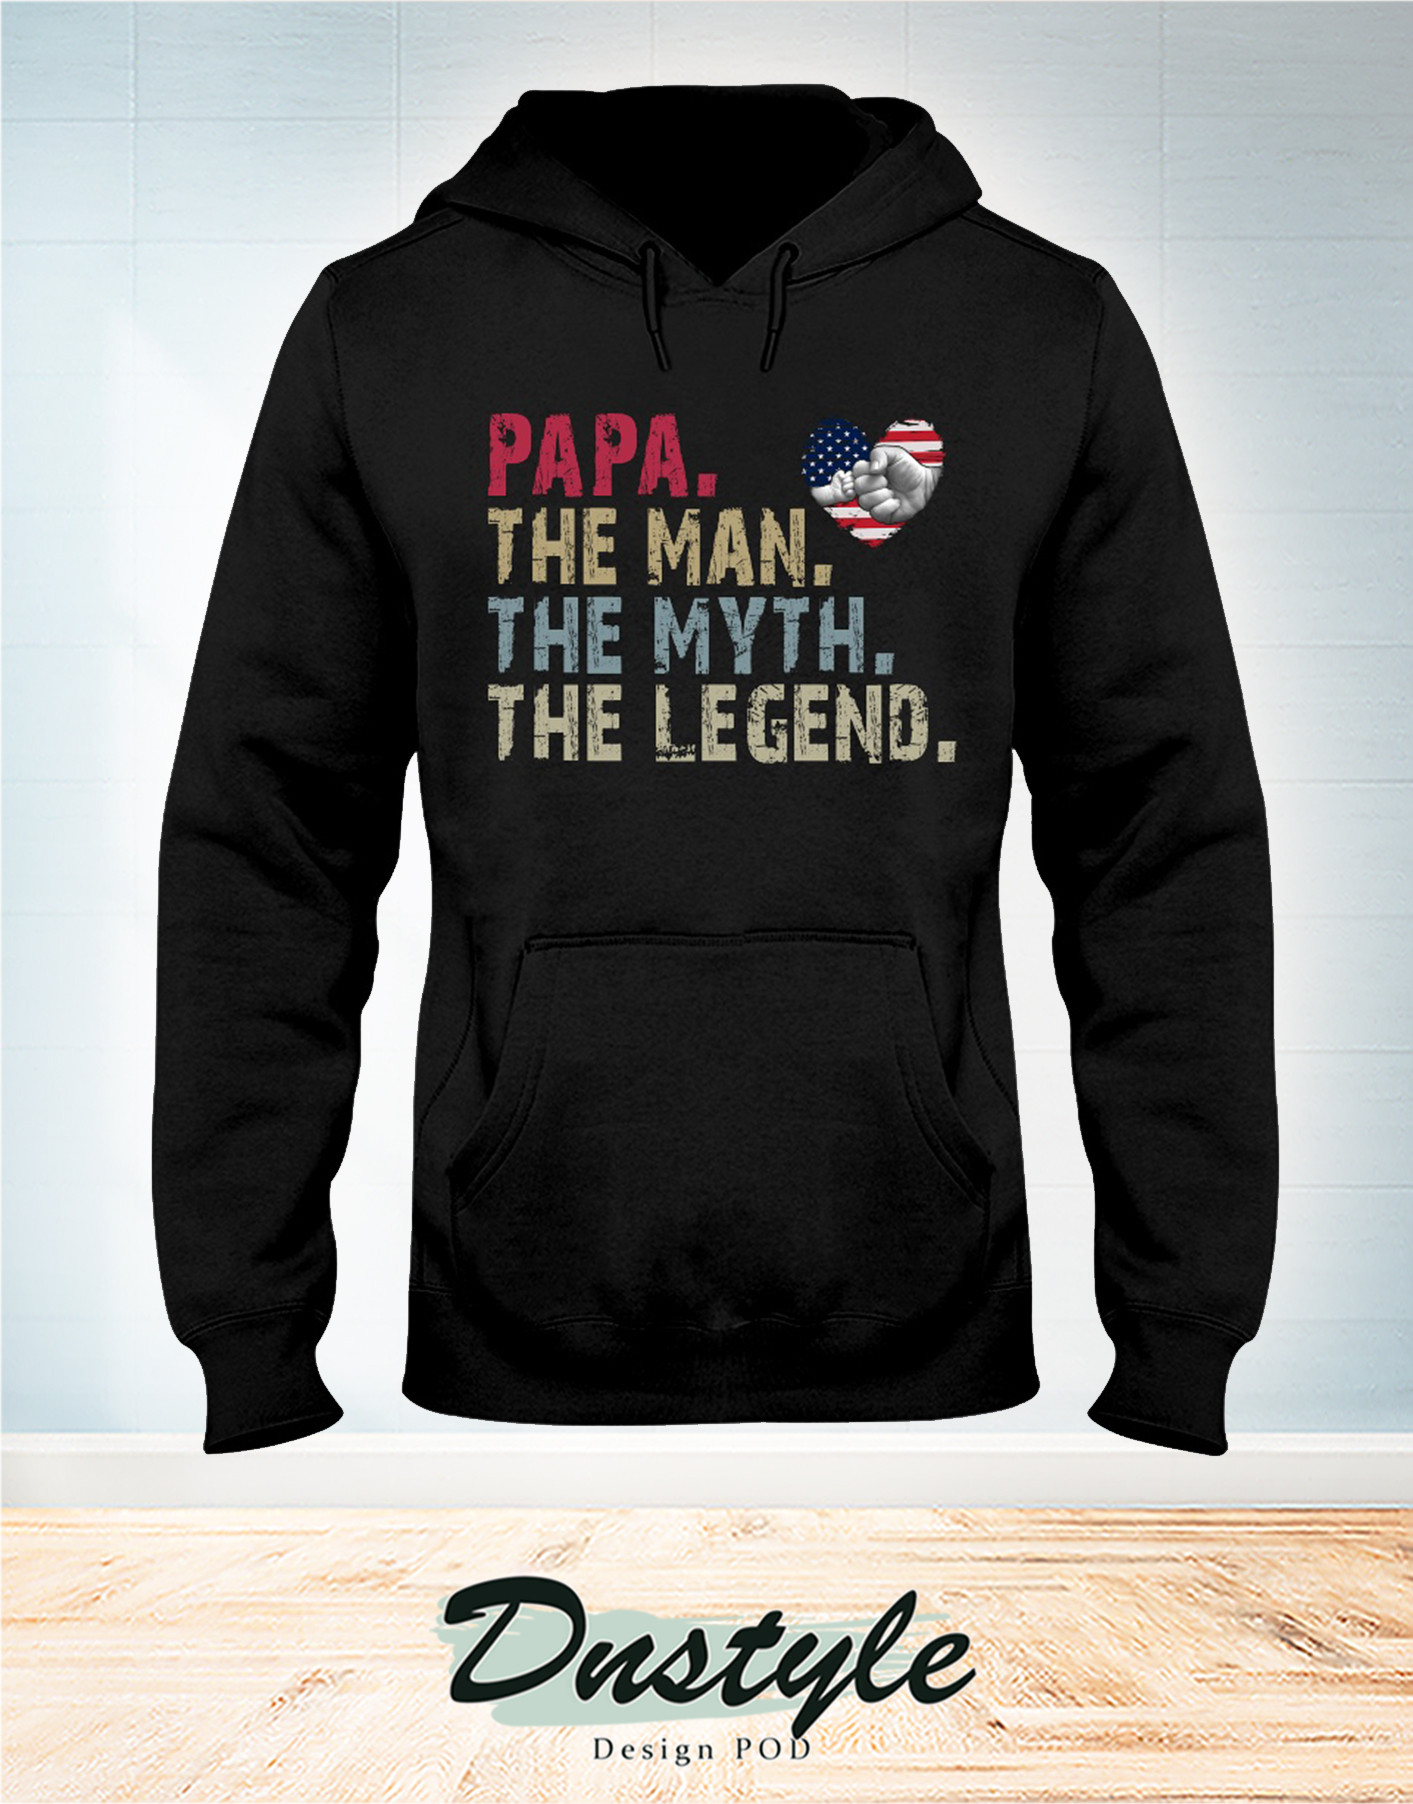 Papa the man the myth the legend american flag heart hoodie